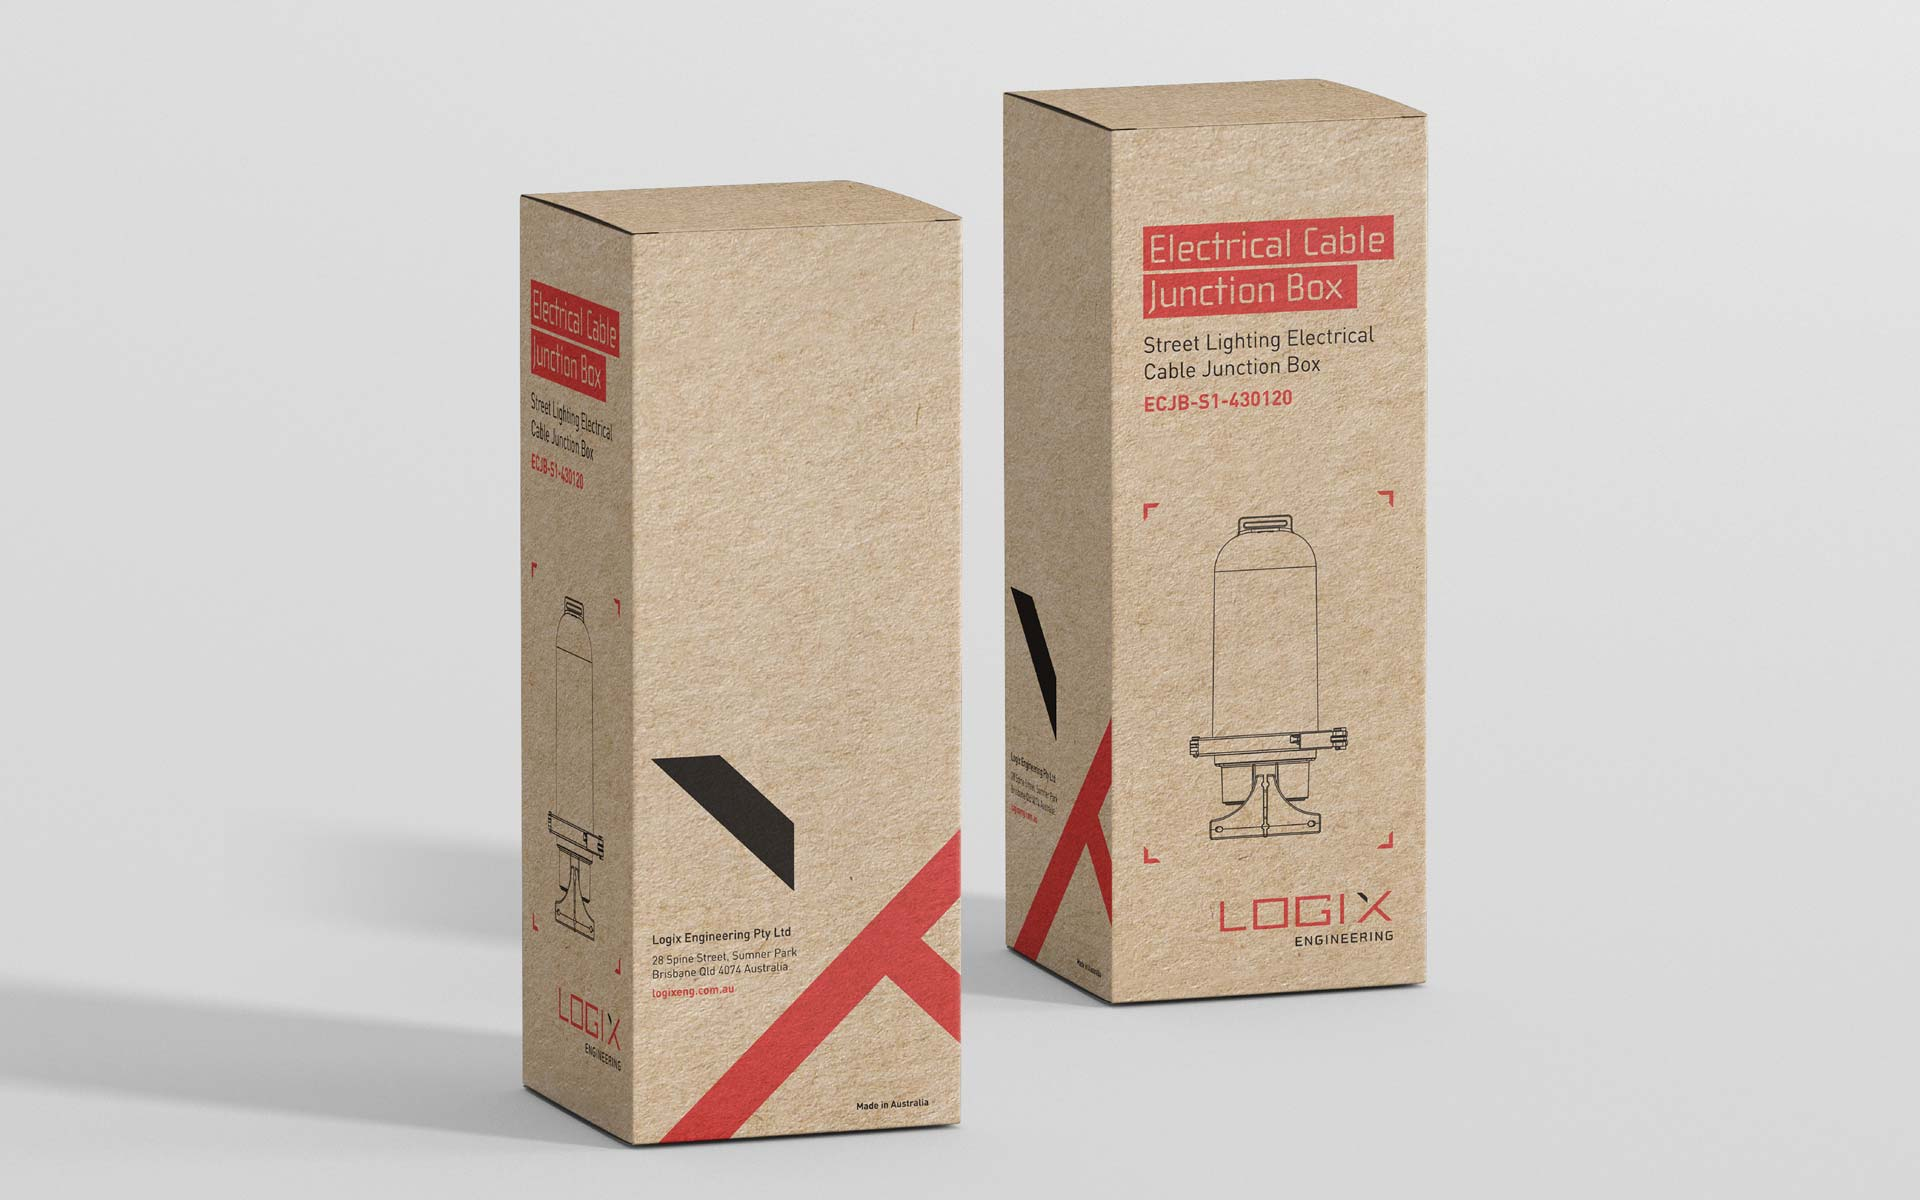 Logix Engineering Flyer Design Packaging